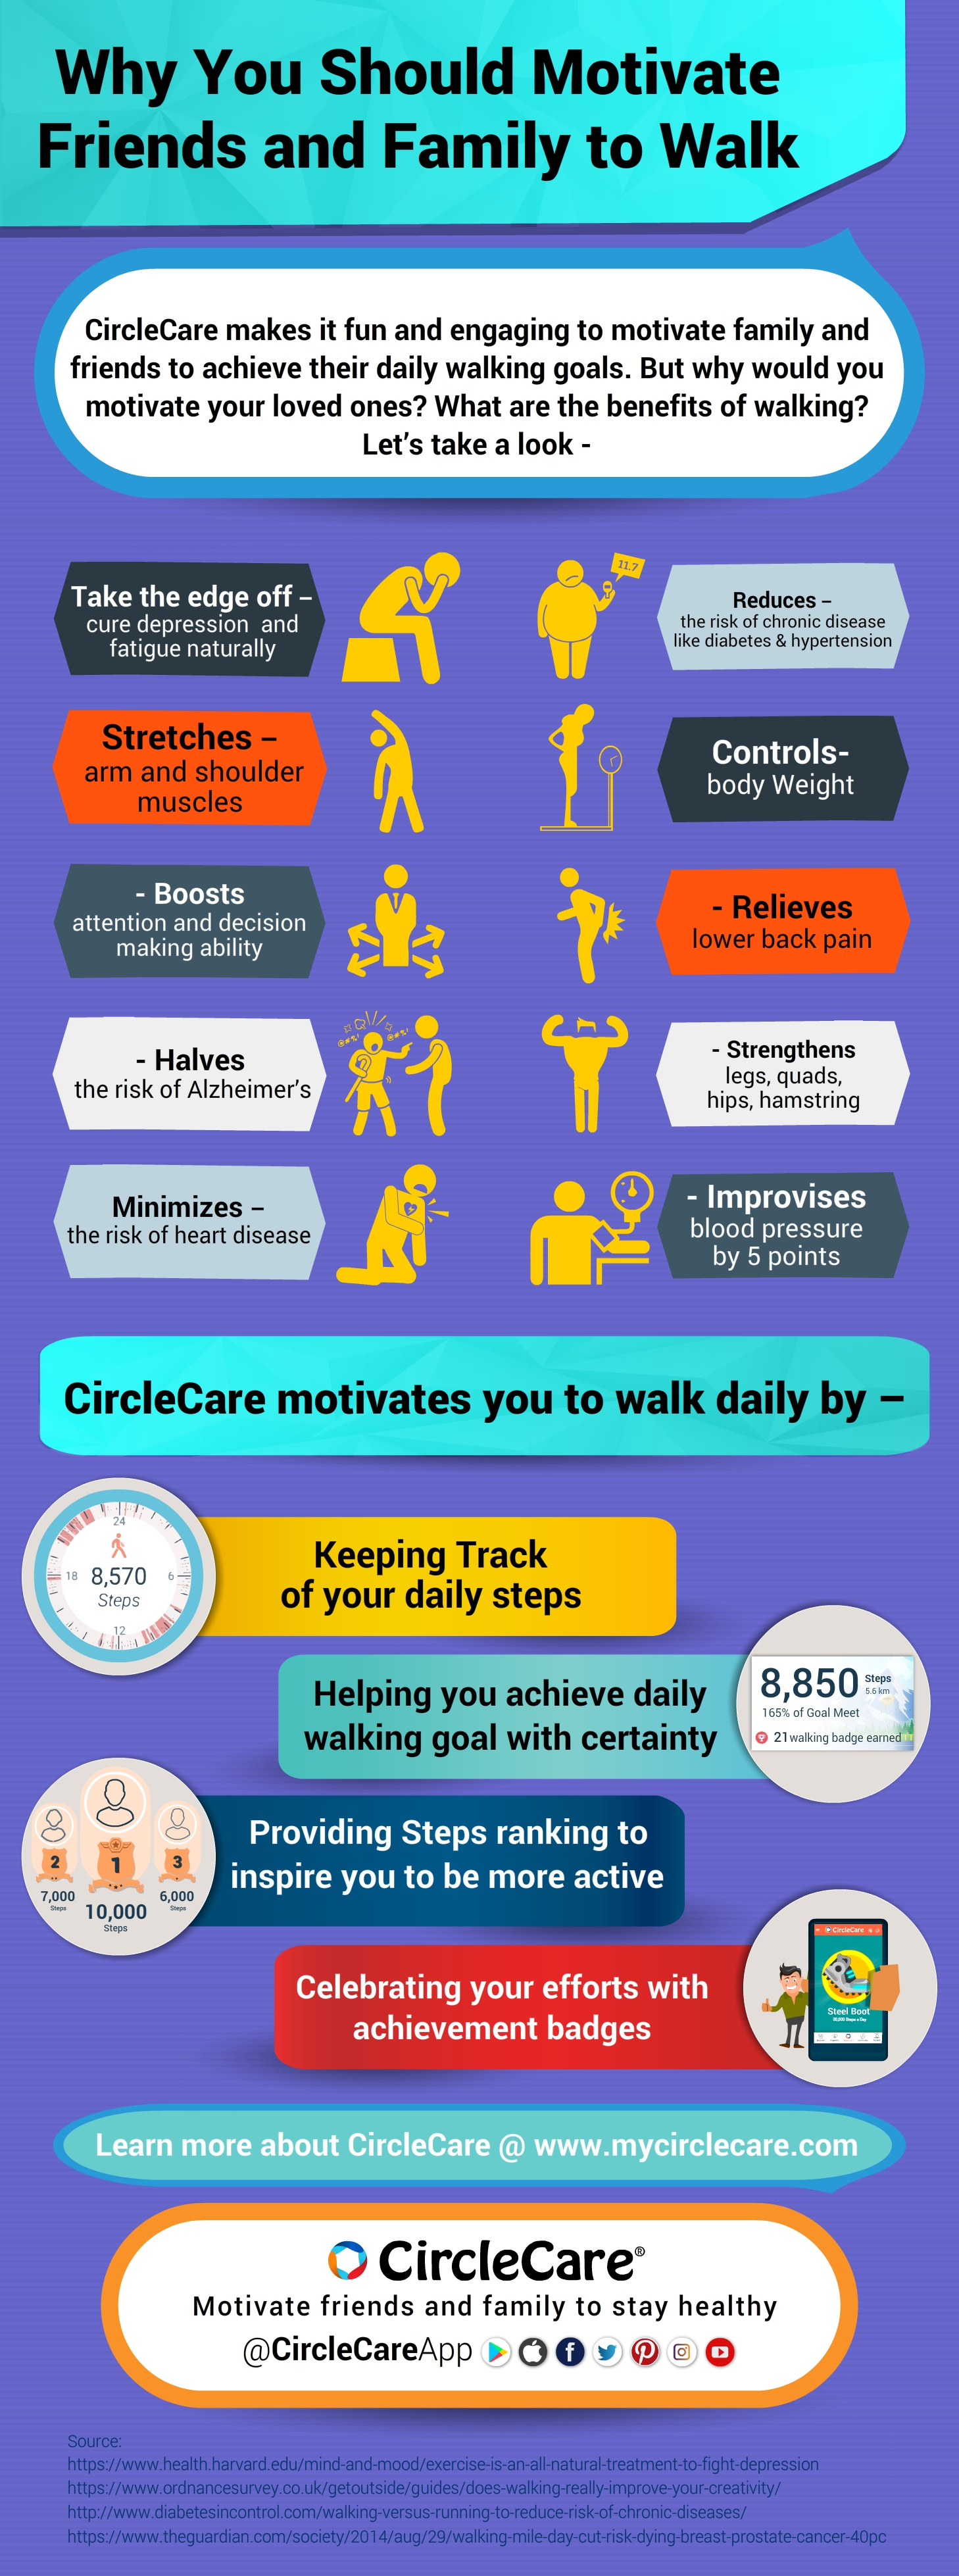 Why You Should Motivate Your Family and Friends to Walk-CircleCare